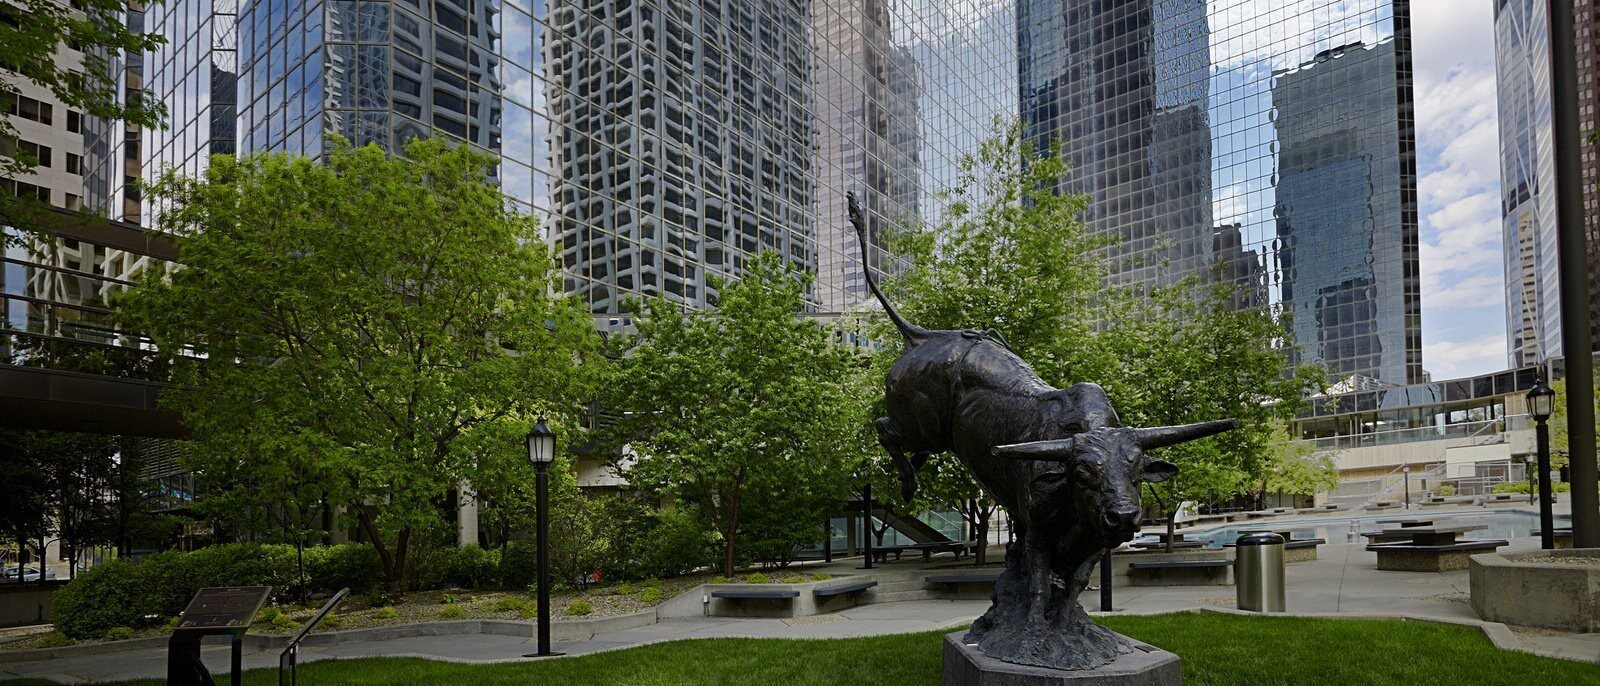 An green park within a city with a sculpture of a bull rearing its back lags.